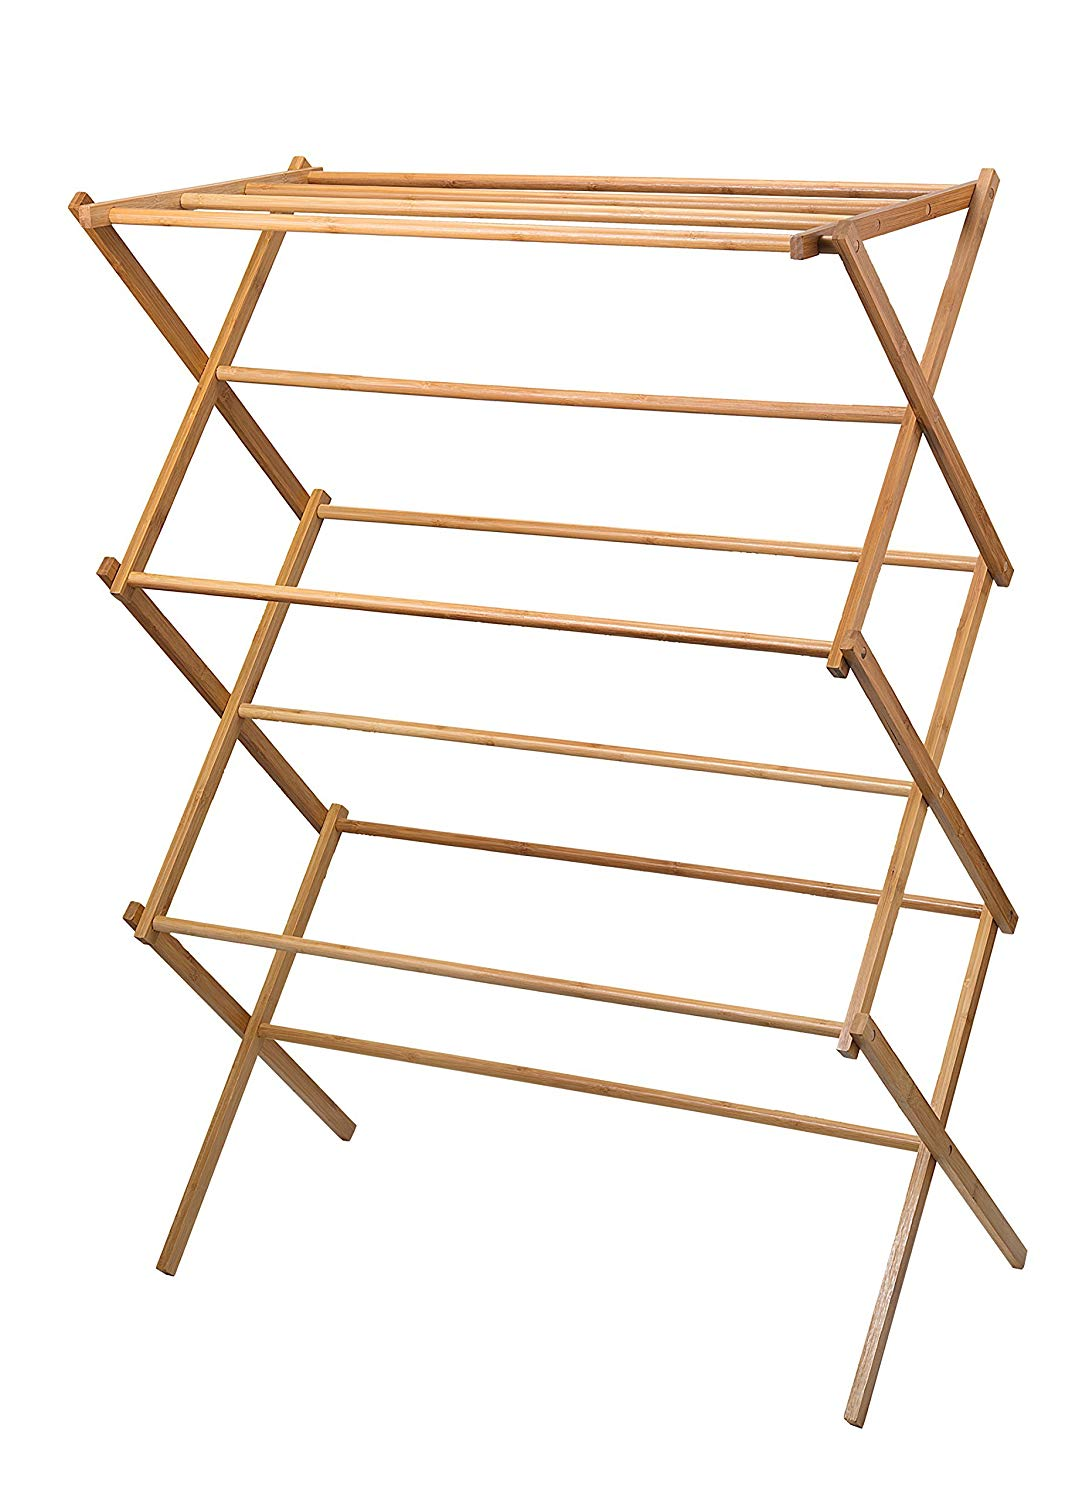 Bamboo + Wooden Drying Rack - $34.99